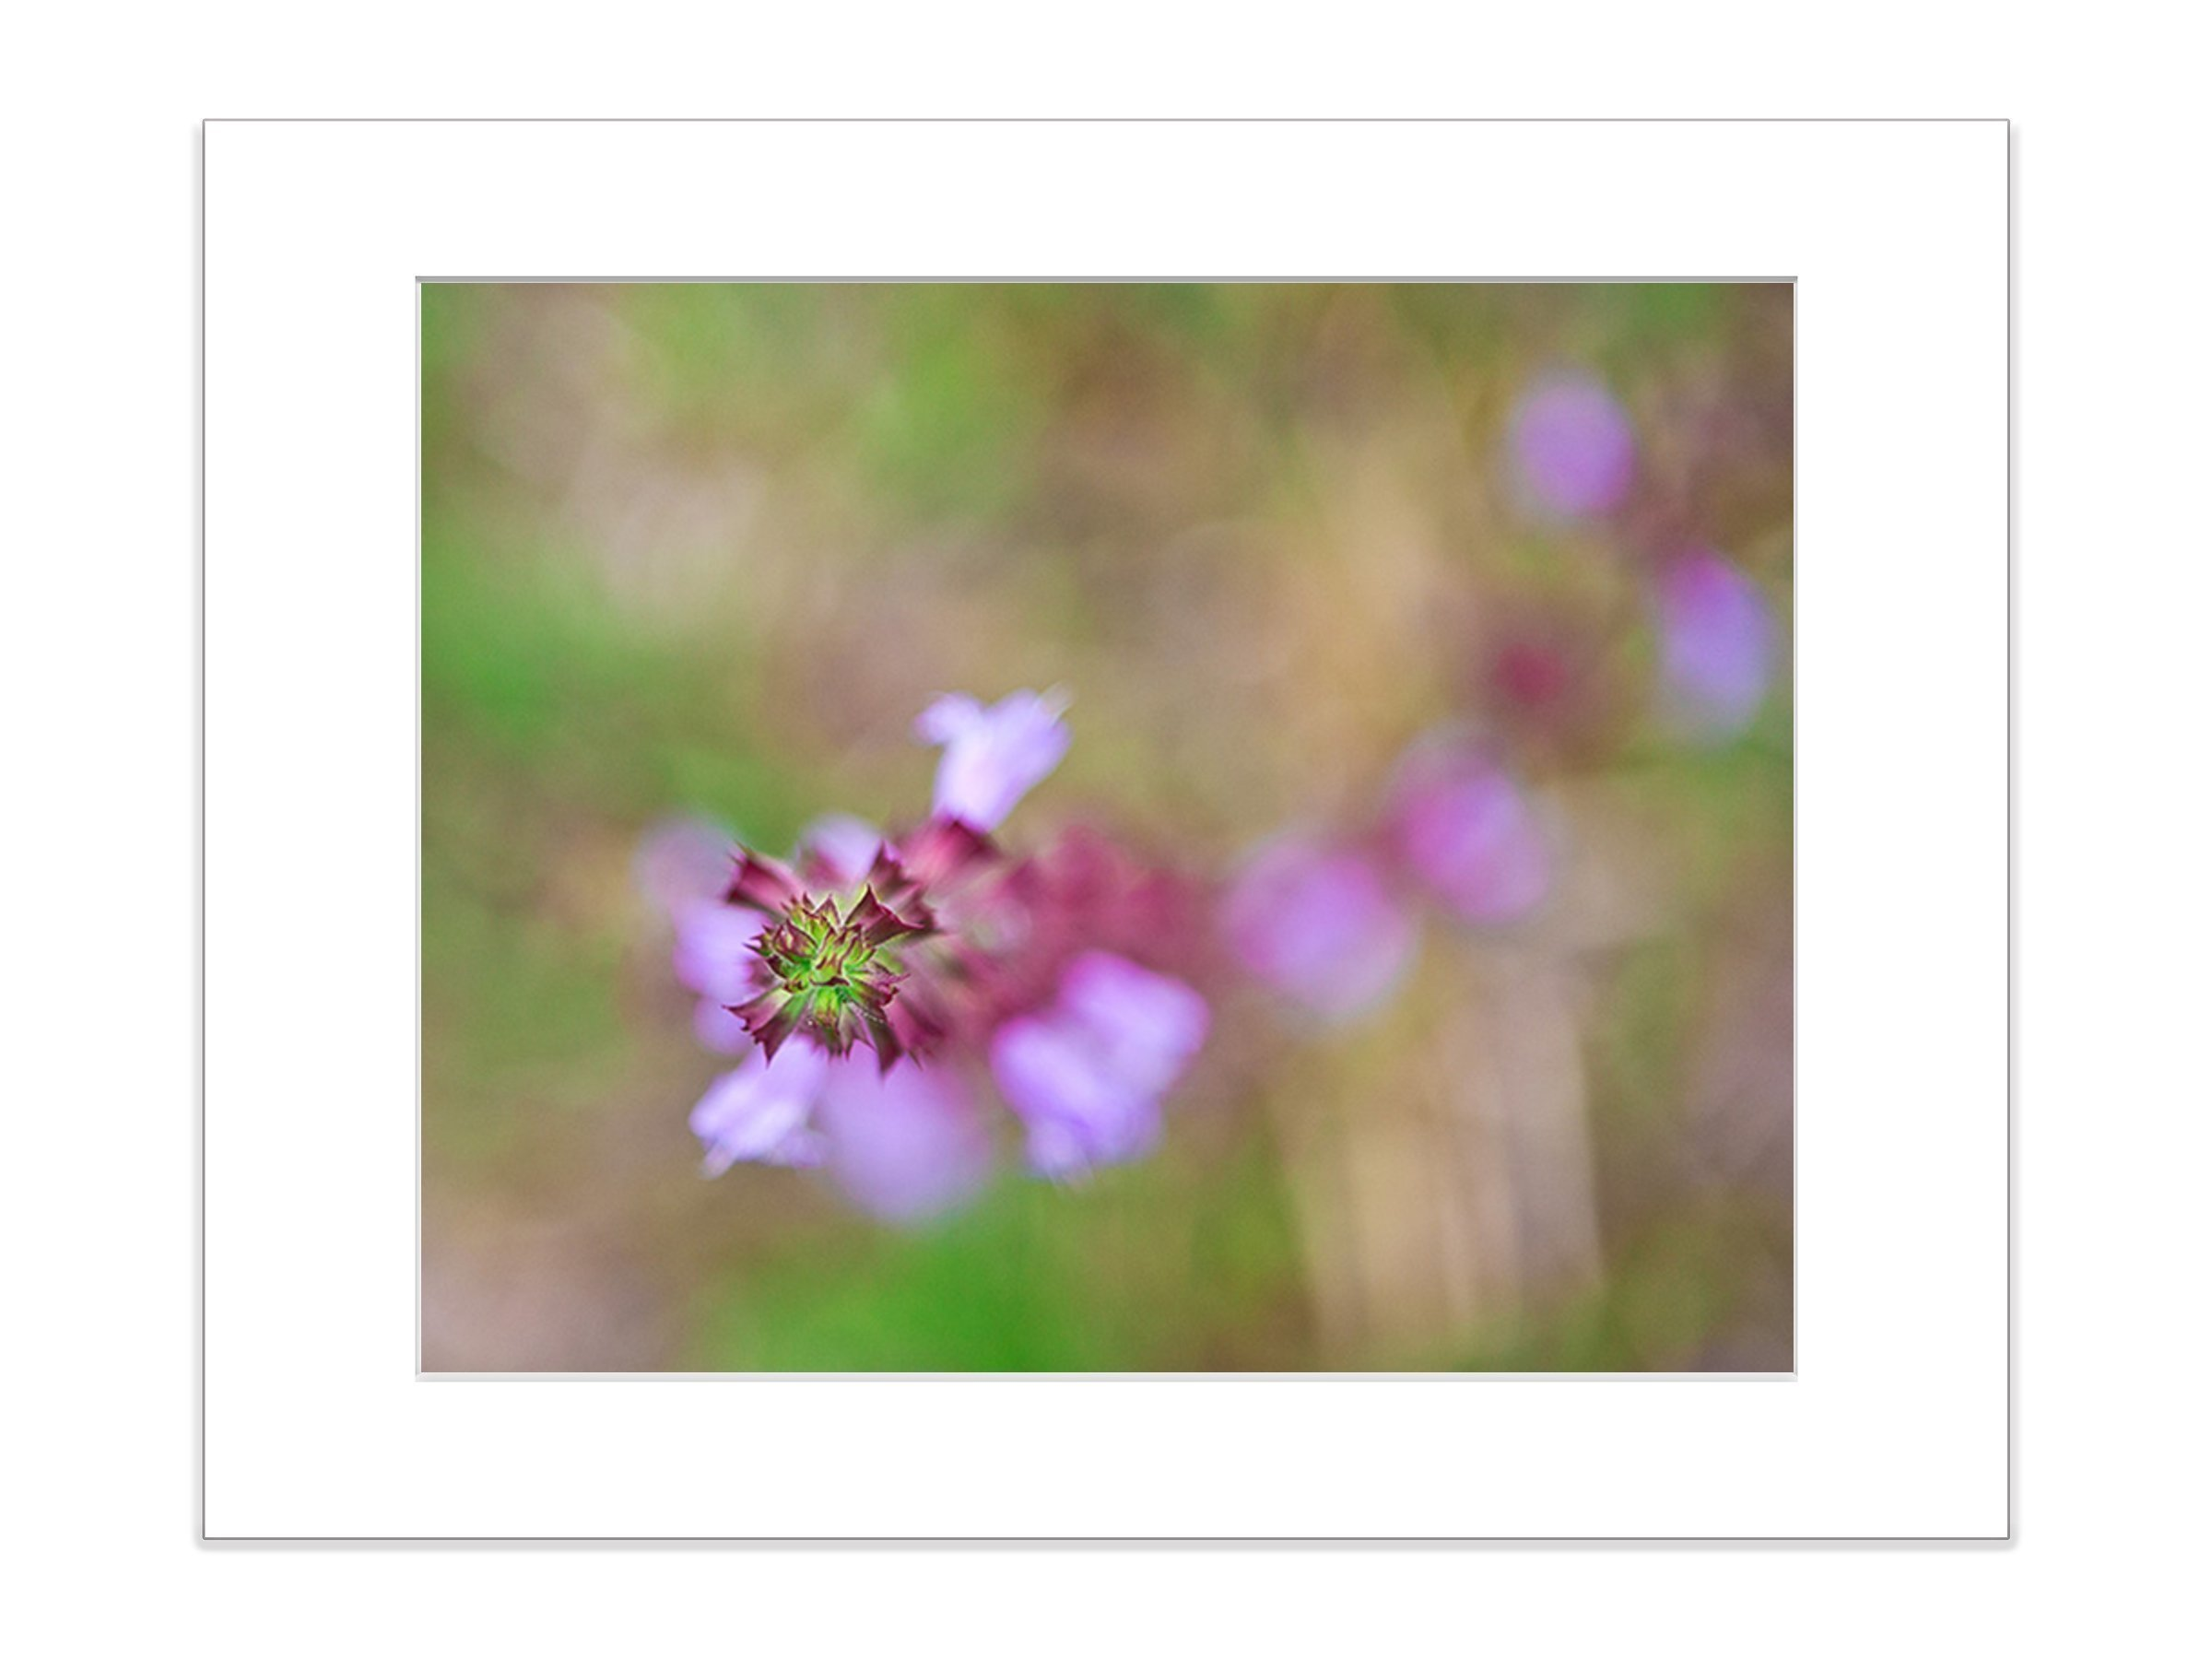 Purple Abstract Wildflower Botanical Nature Photo 8x10 InchMatted Print